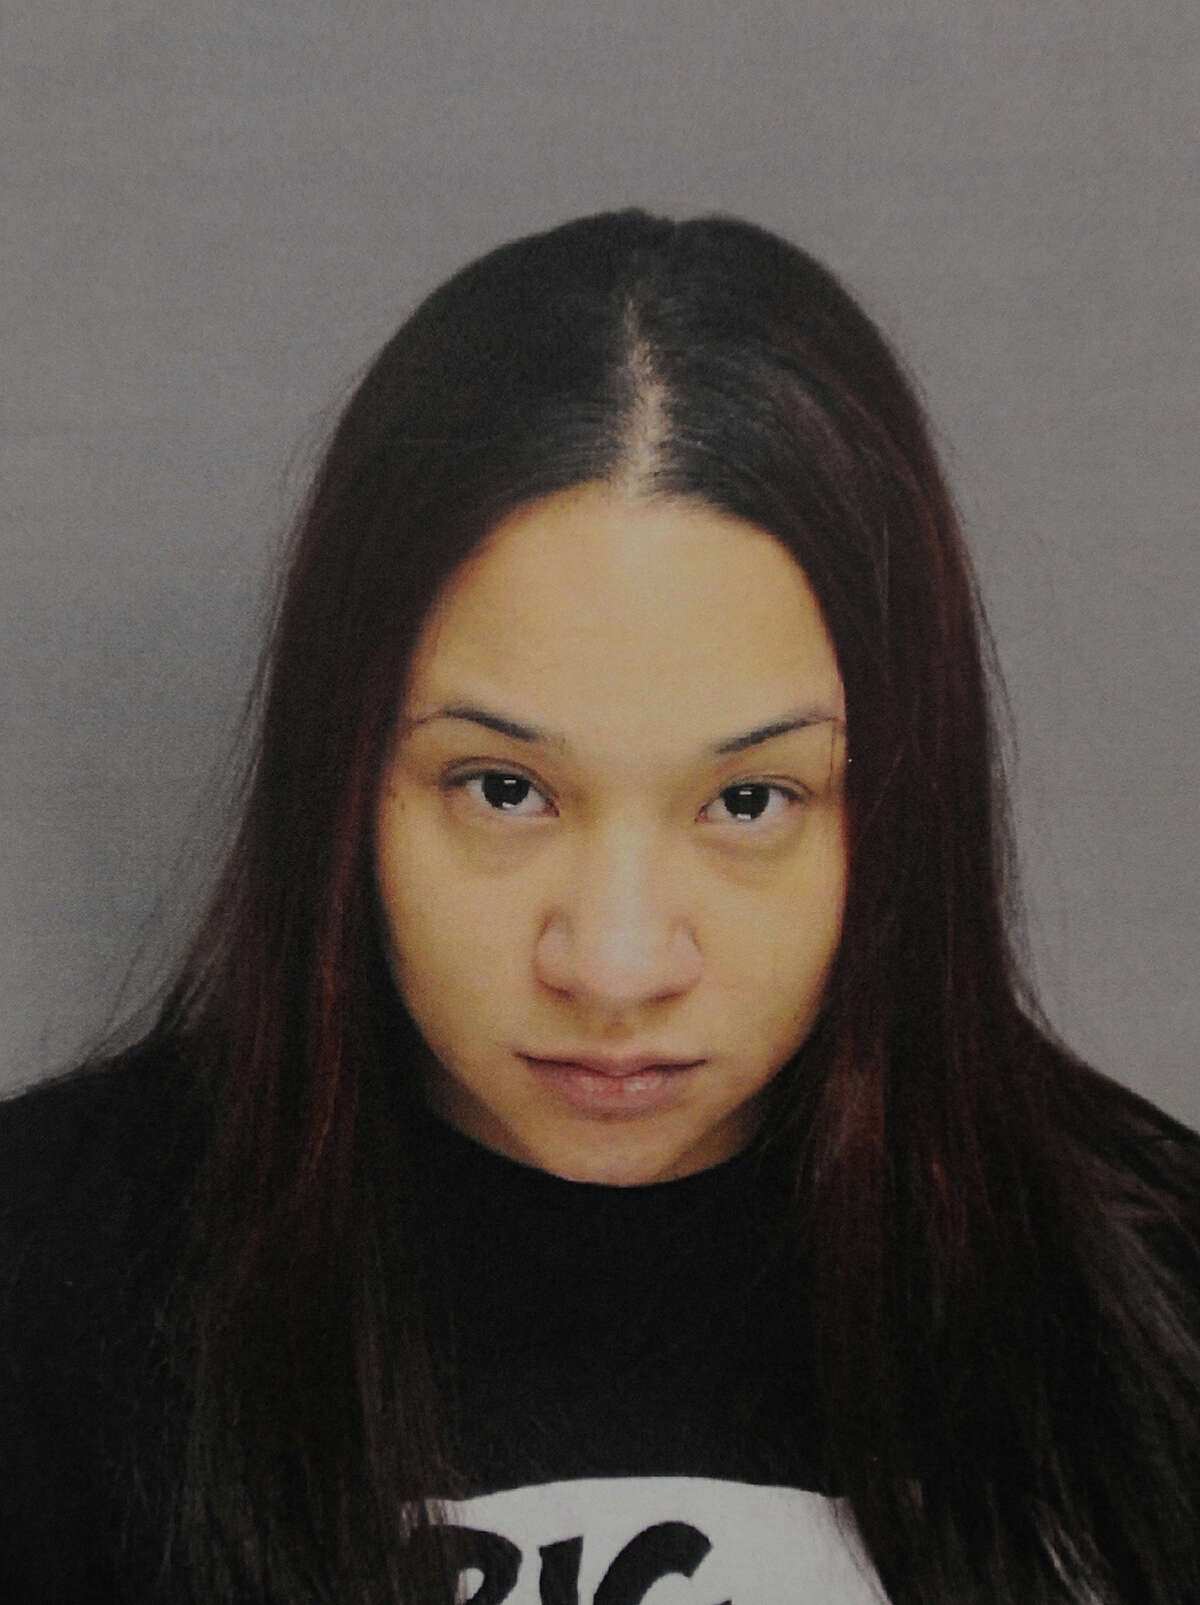 Vivian Rodriguez, one of two suspects arrested on a variety of drug and weapons charges following a police raid on their apartment at 109 George Street in Bridgeport, Conn. Large quantities of drugs, cash, ammunition, and two cars were seized by police.